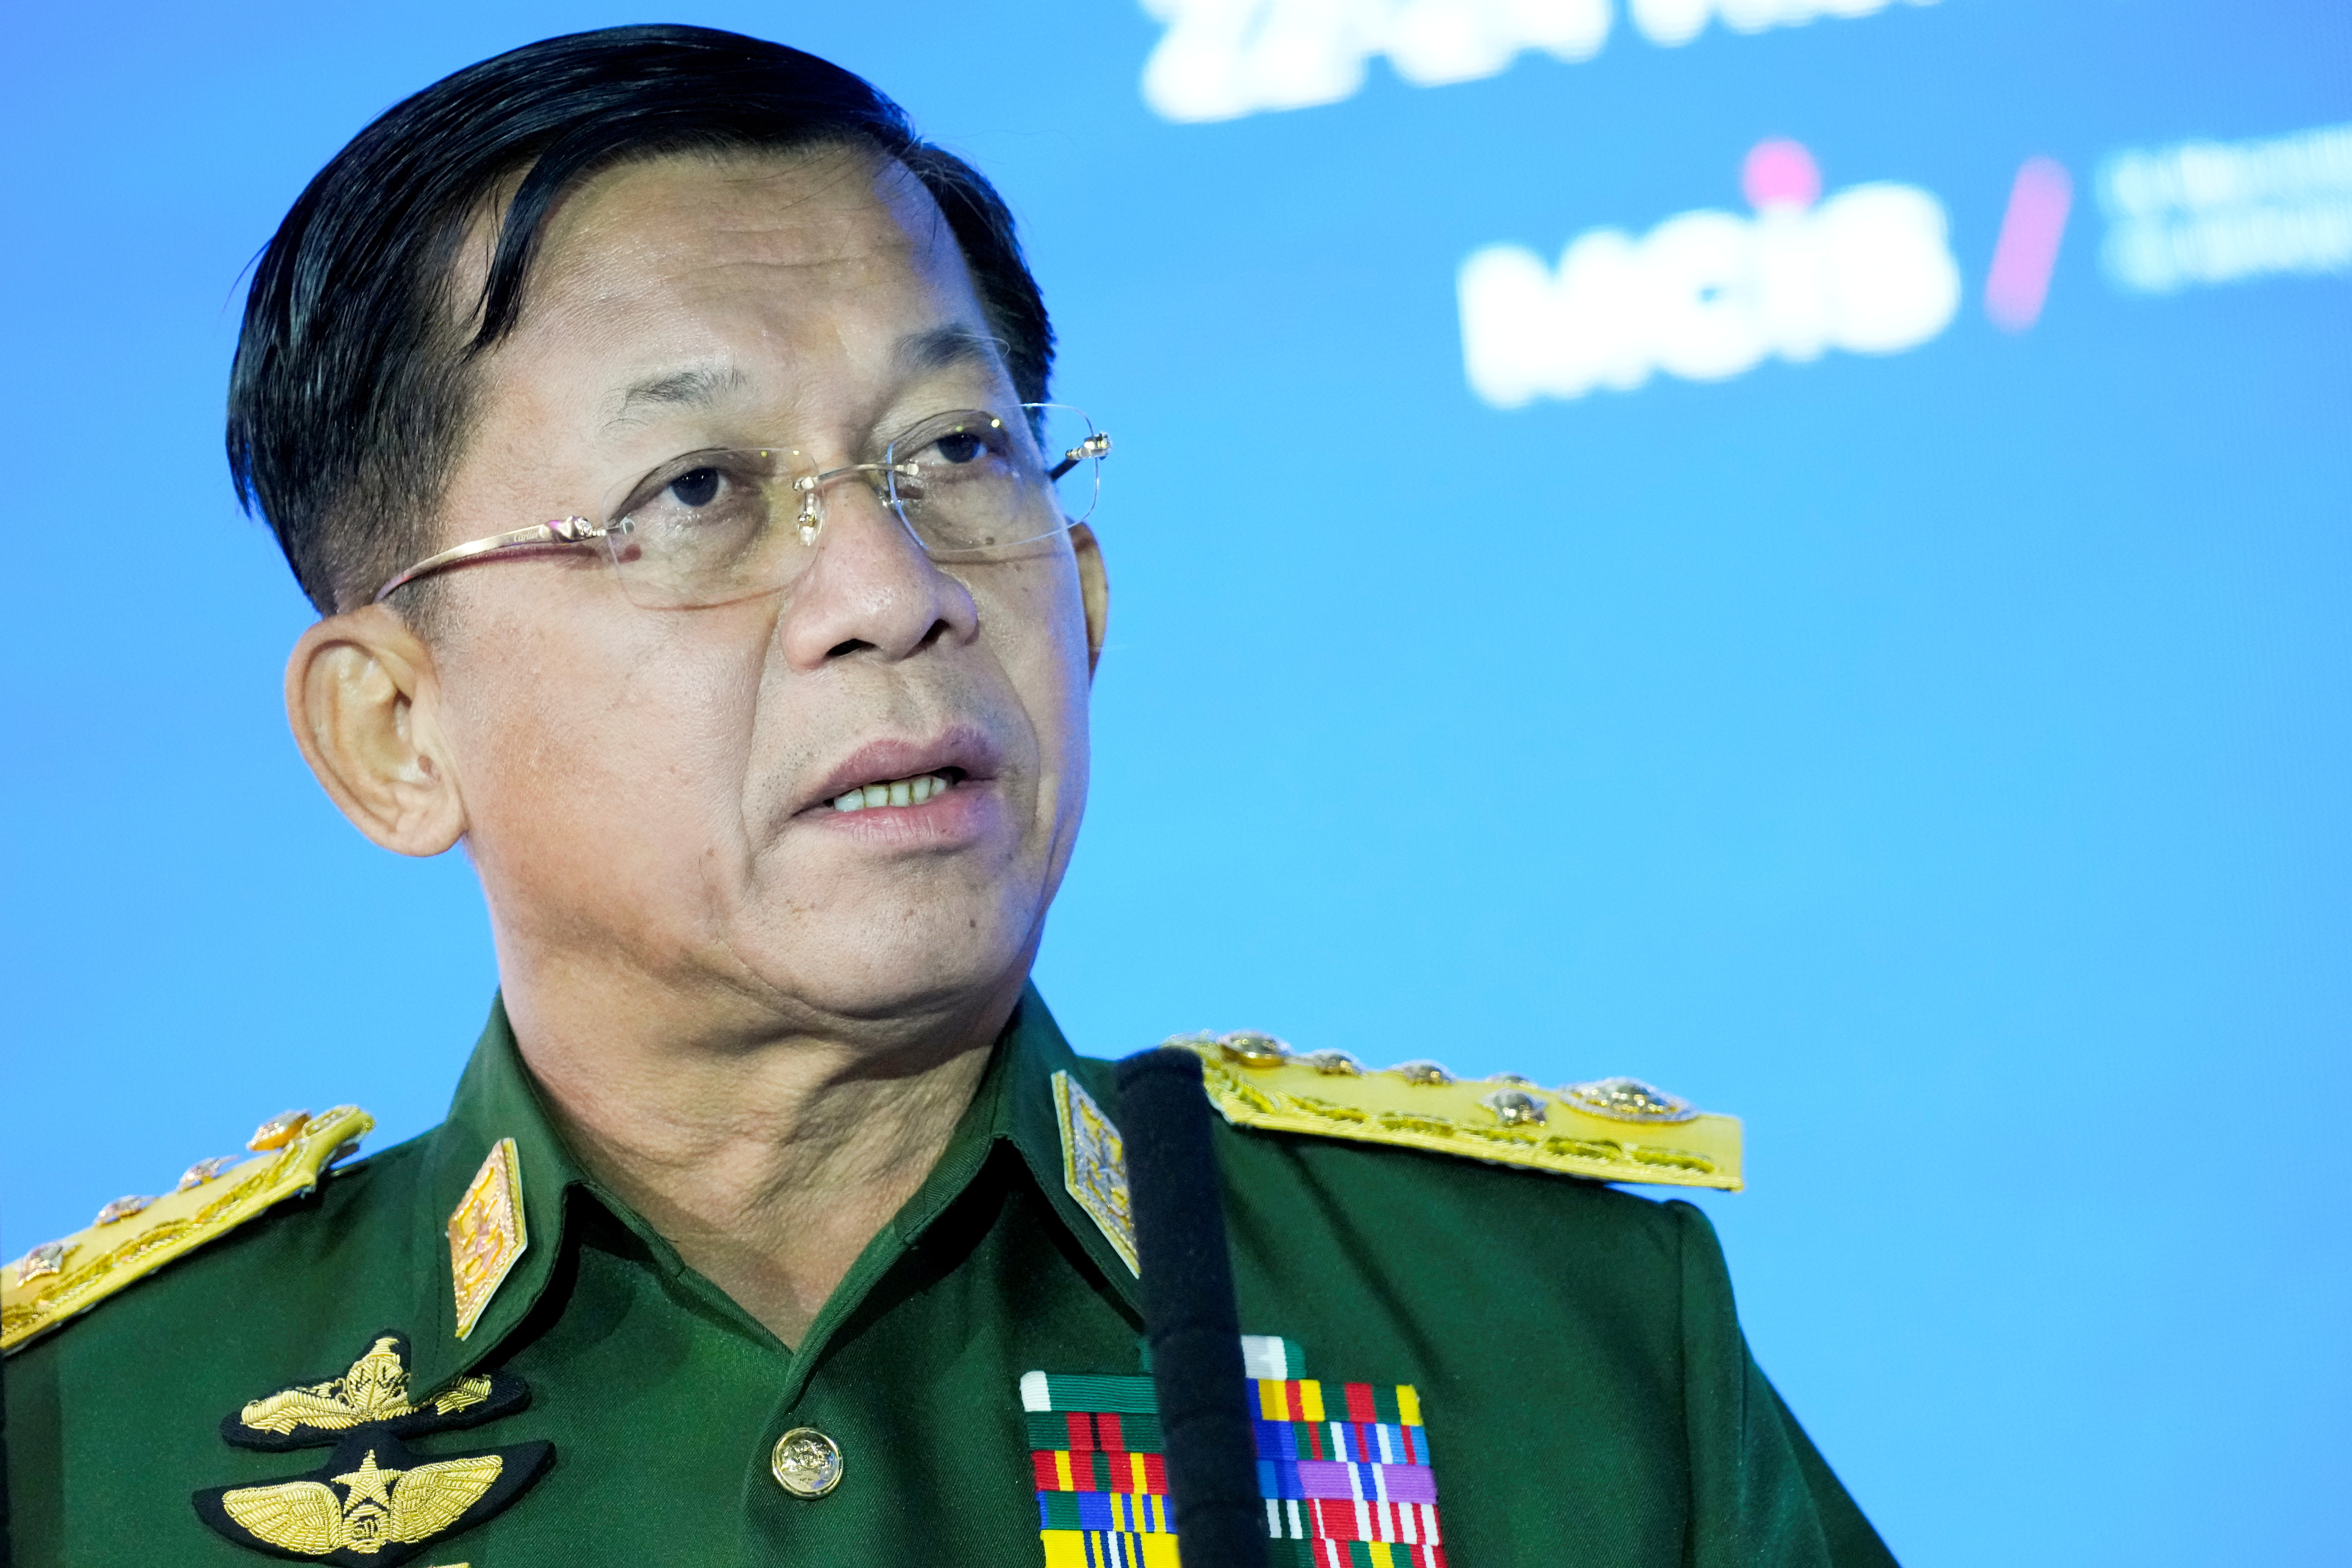 Commander-in-Chief of Myanmar's armed forces, Senior General Min Aung Hlaing, delivers a speech at the IX Moscow conference on international security in Moscow, Russia, June 23, 2021. Alexander Zemlianichenko/Pool via REUTERS/File Photo